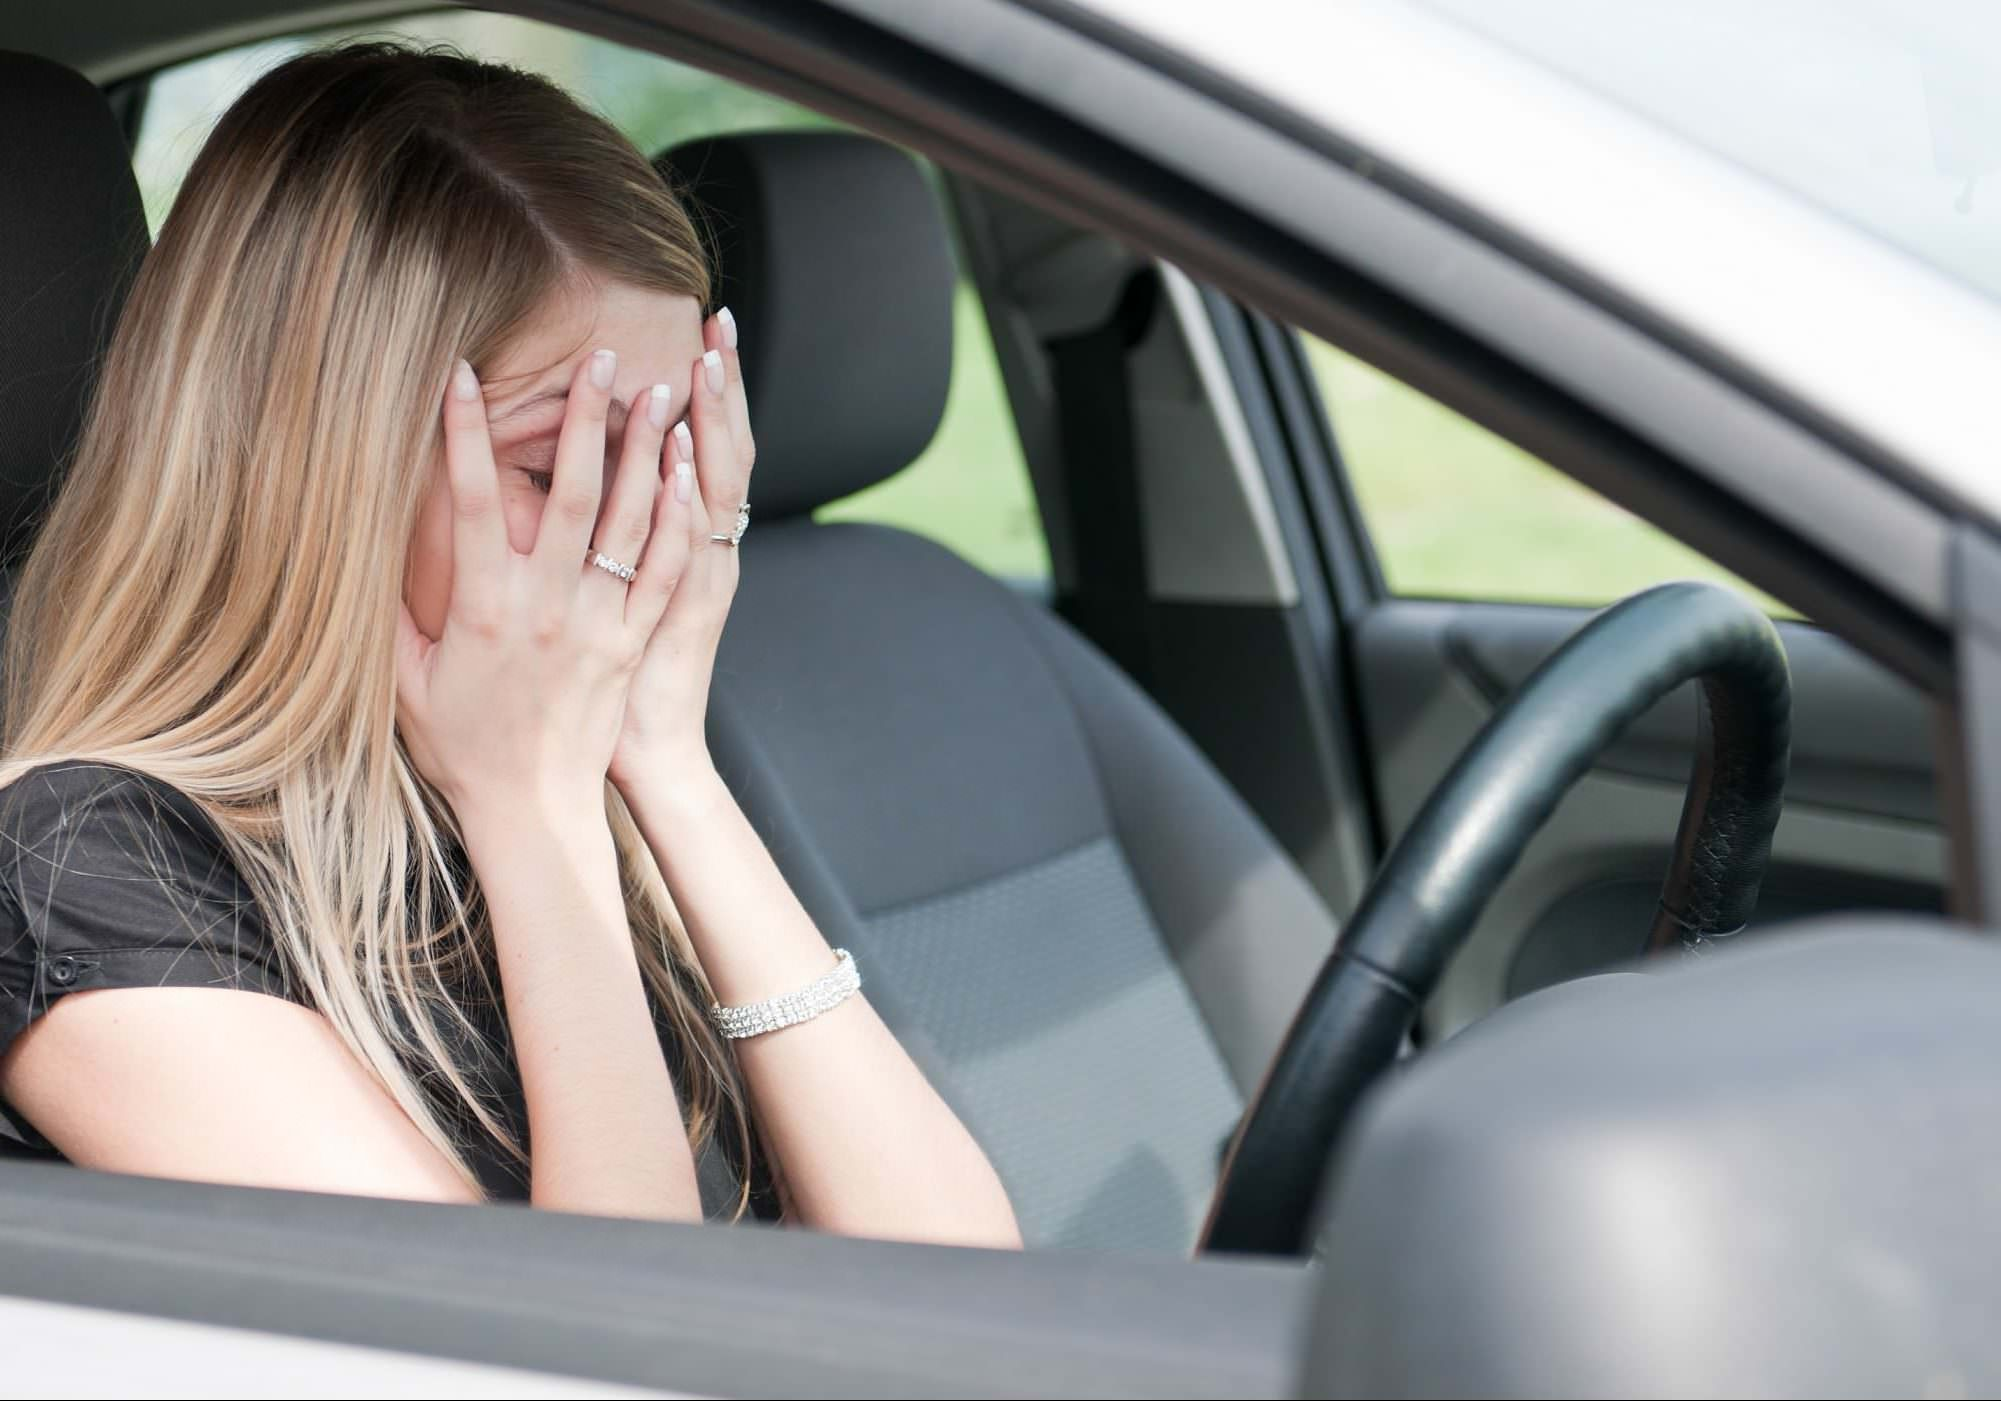 Fear Of Driving >> 4 Common Driving Fears And How To Combat Them